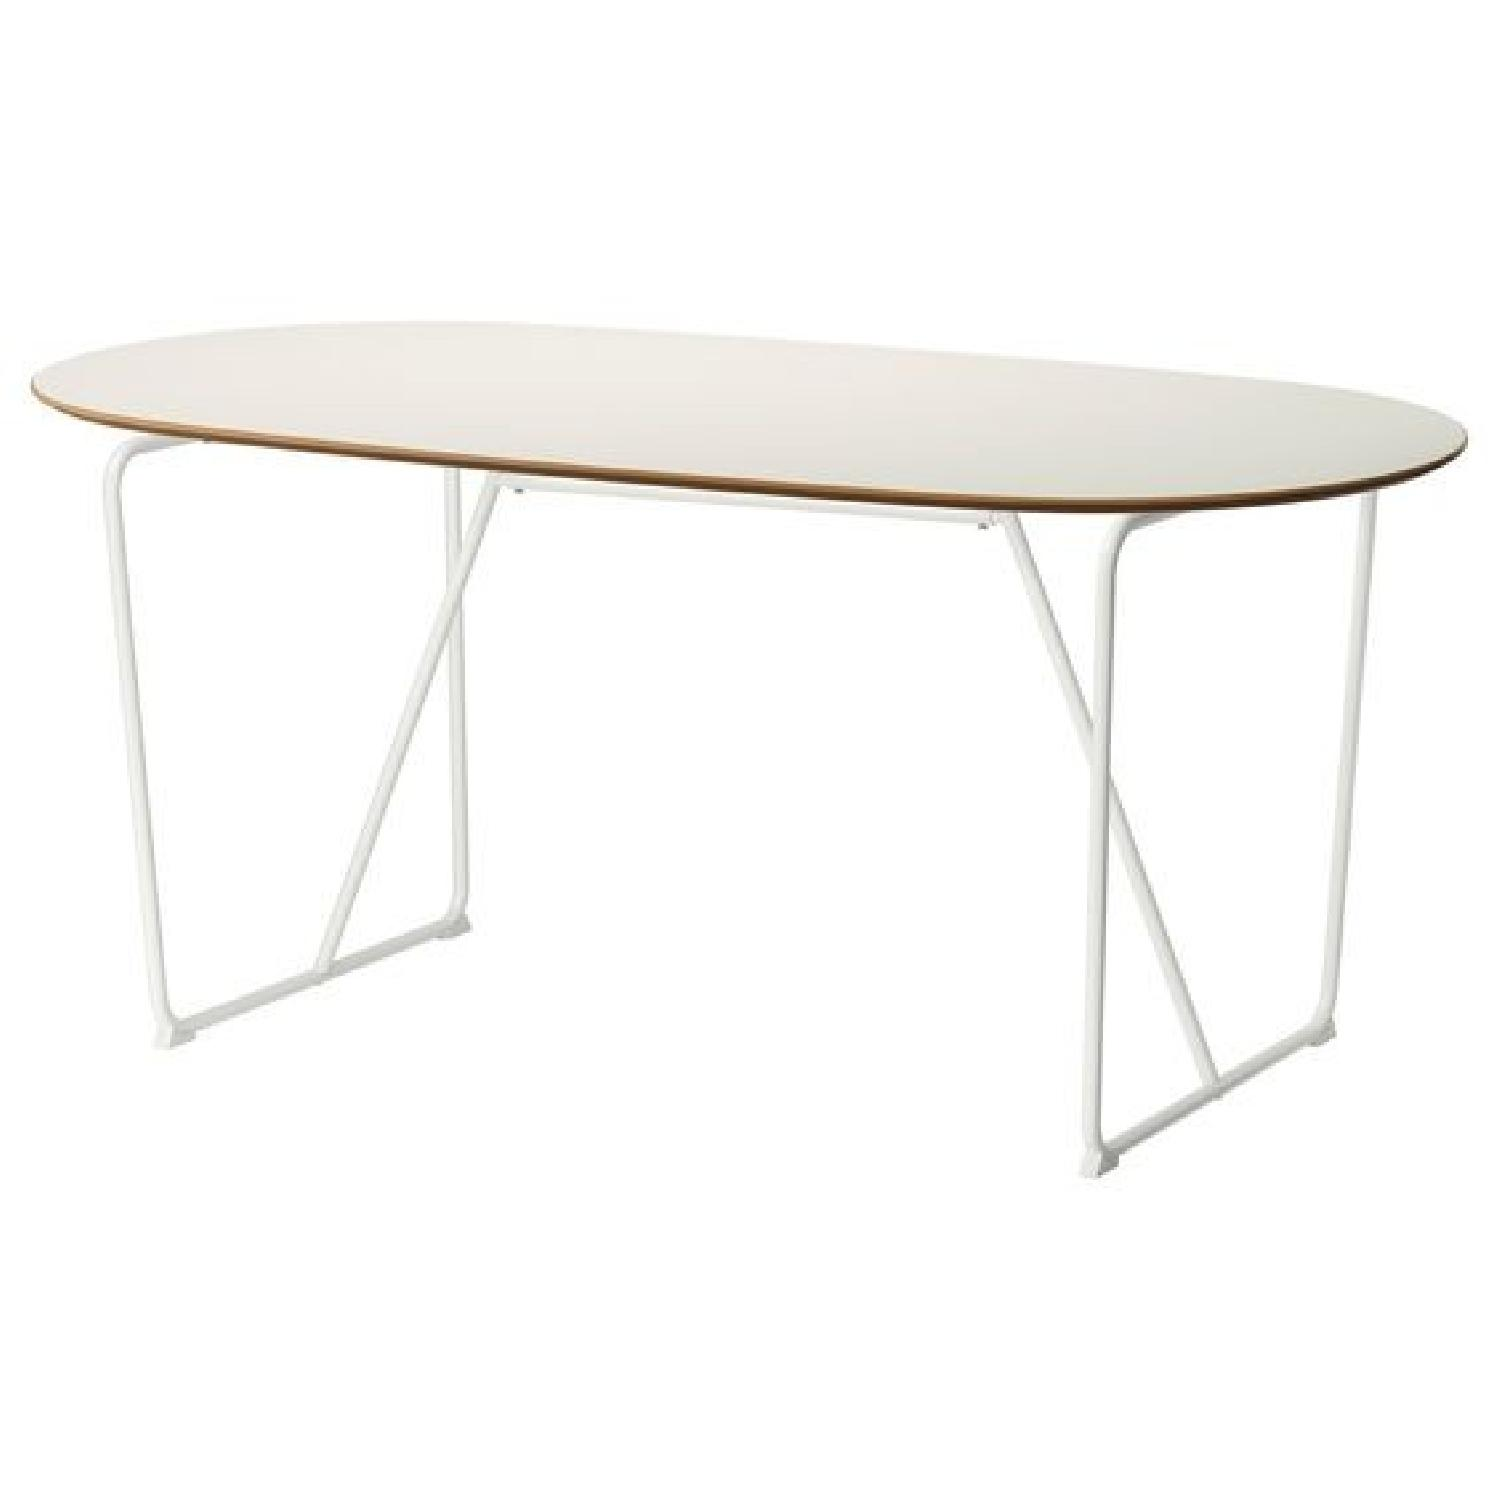 Ikea Table Ikea Slahult Backaryd Dining Table